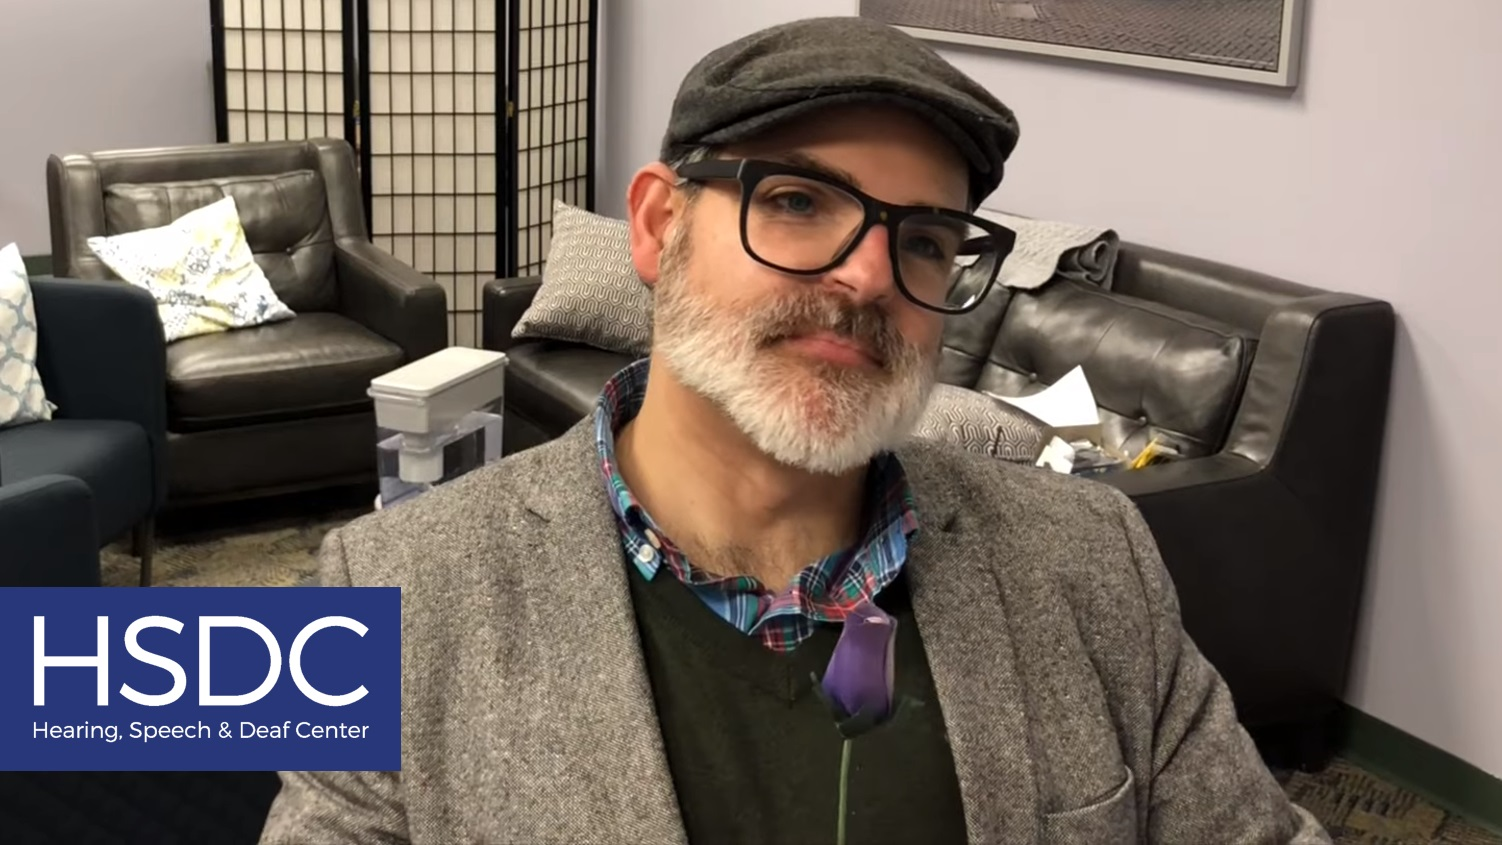 A screenshot of a video. A man with a gray beard, black glasses, grey hat, and grey coat is holding a blue flower and looking offscreen to the right. The HSDC logo is in the bottom left corner.